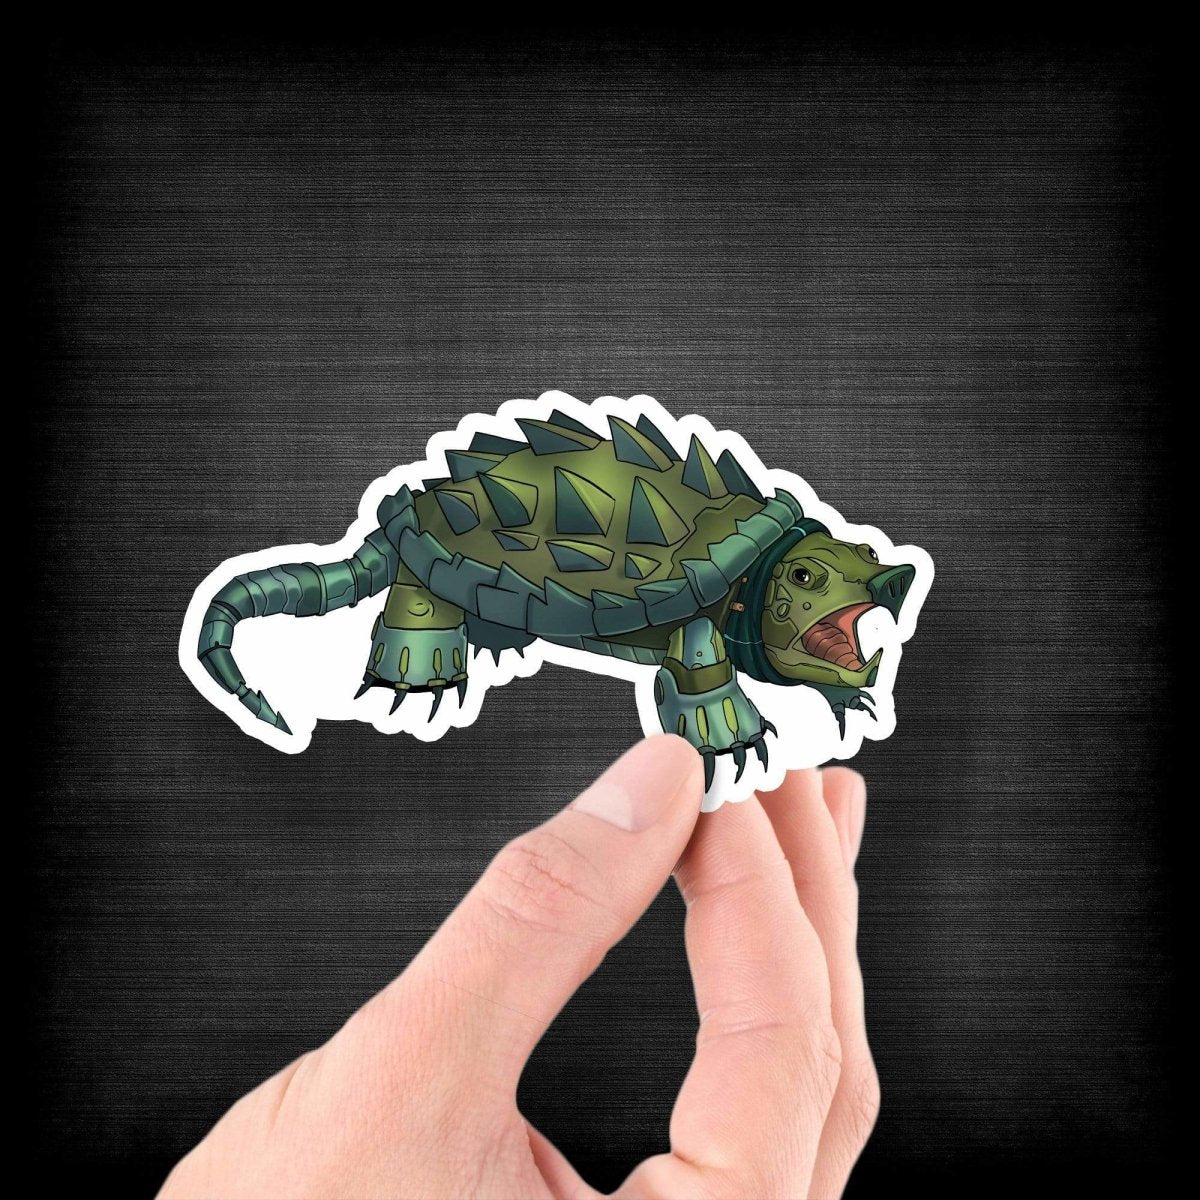 Alligator Snapping Turtle Robot - Vinyl Sticker - Dan Pearce Sticker Shop